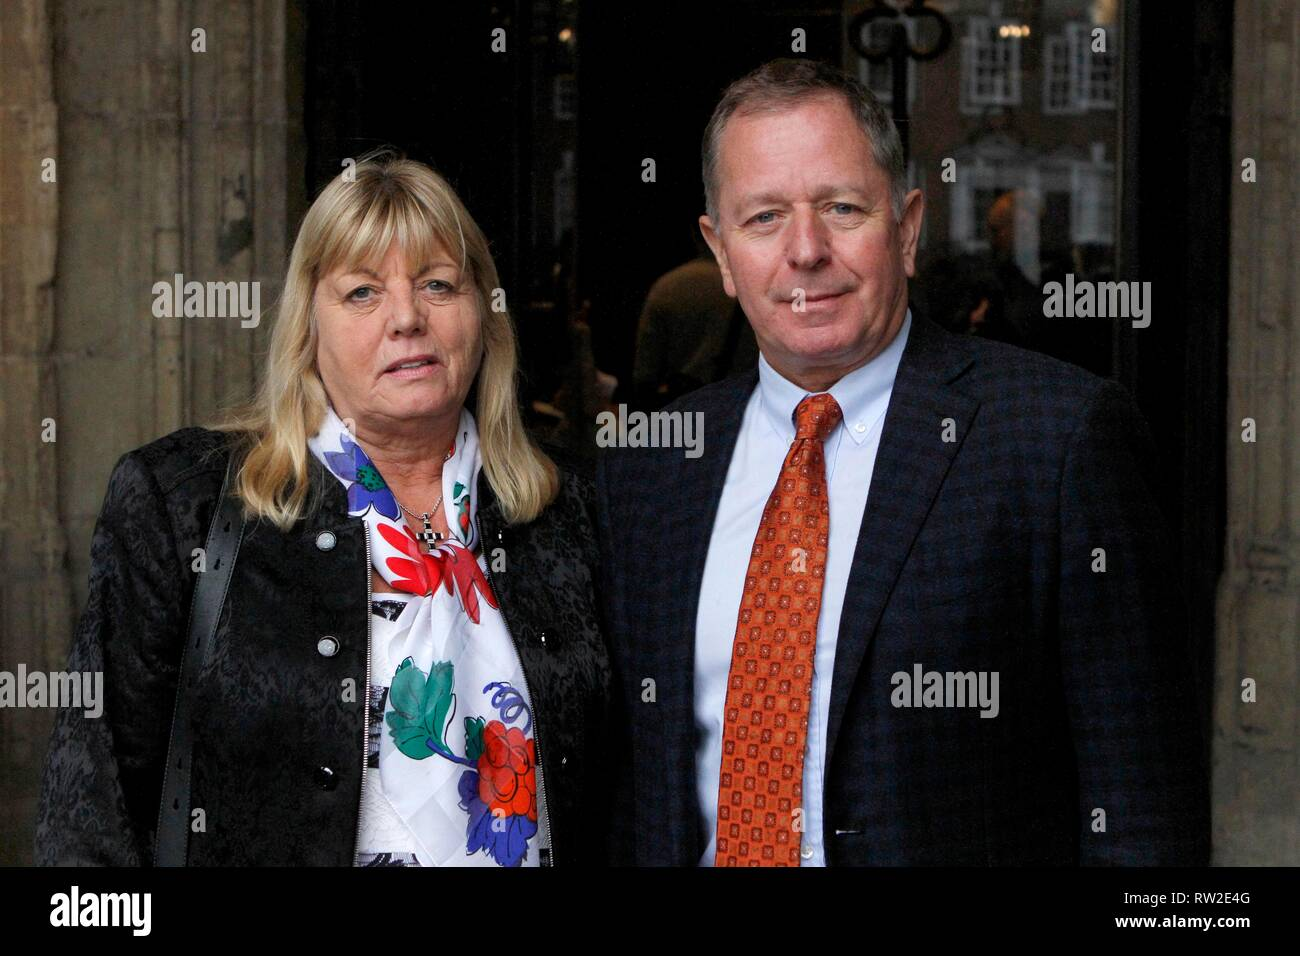 Liz and Martin Brundle, the former Formula One racing driver and SkyF1 commentator. The memorial service at Gloucester Cathedral for Christine Mills M - Stock Image